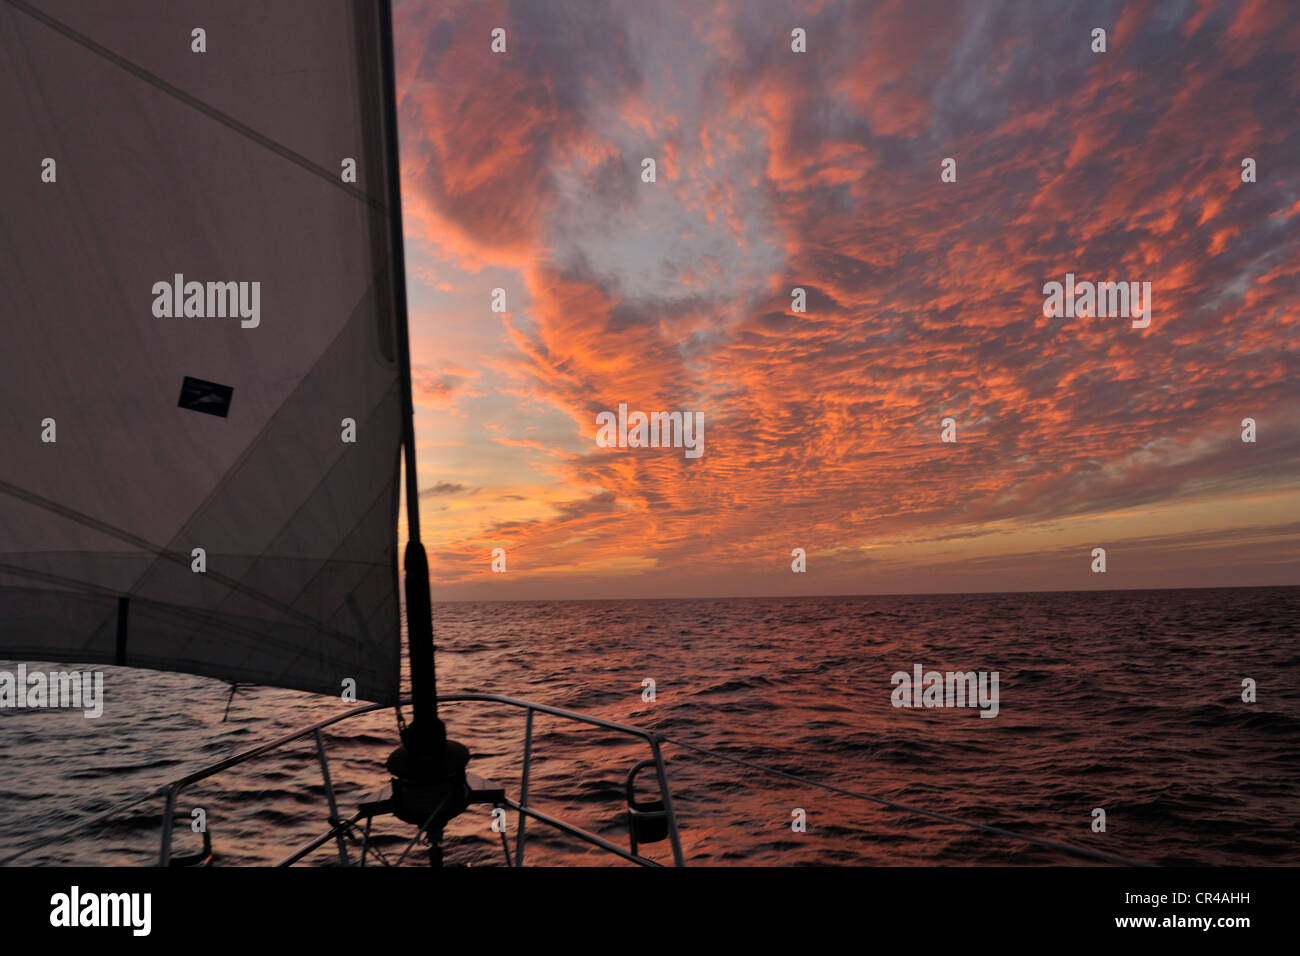 A cruising yacht sails south west through the Caribbean Sea at sunset. - Stock Image